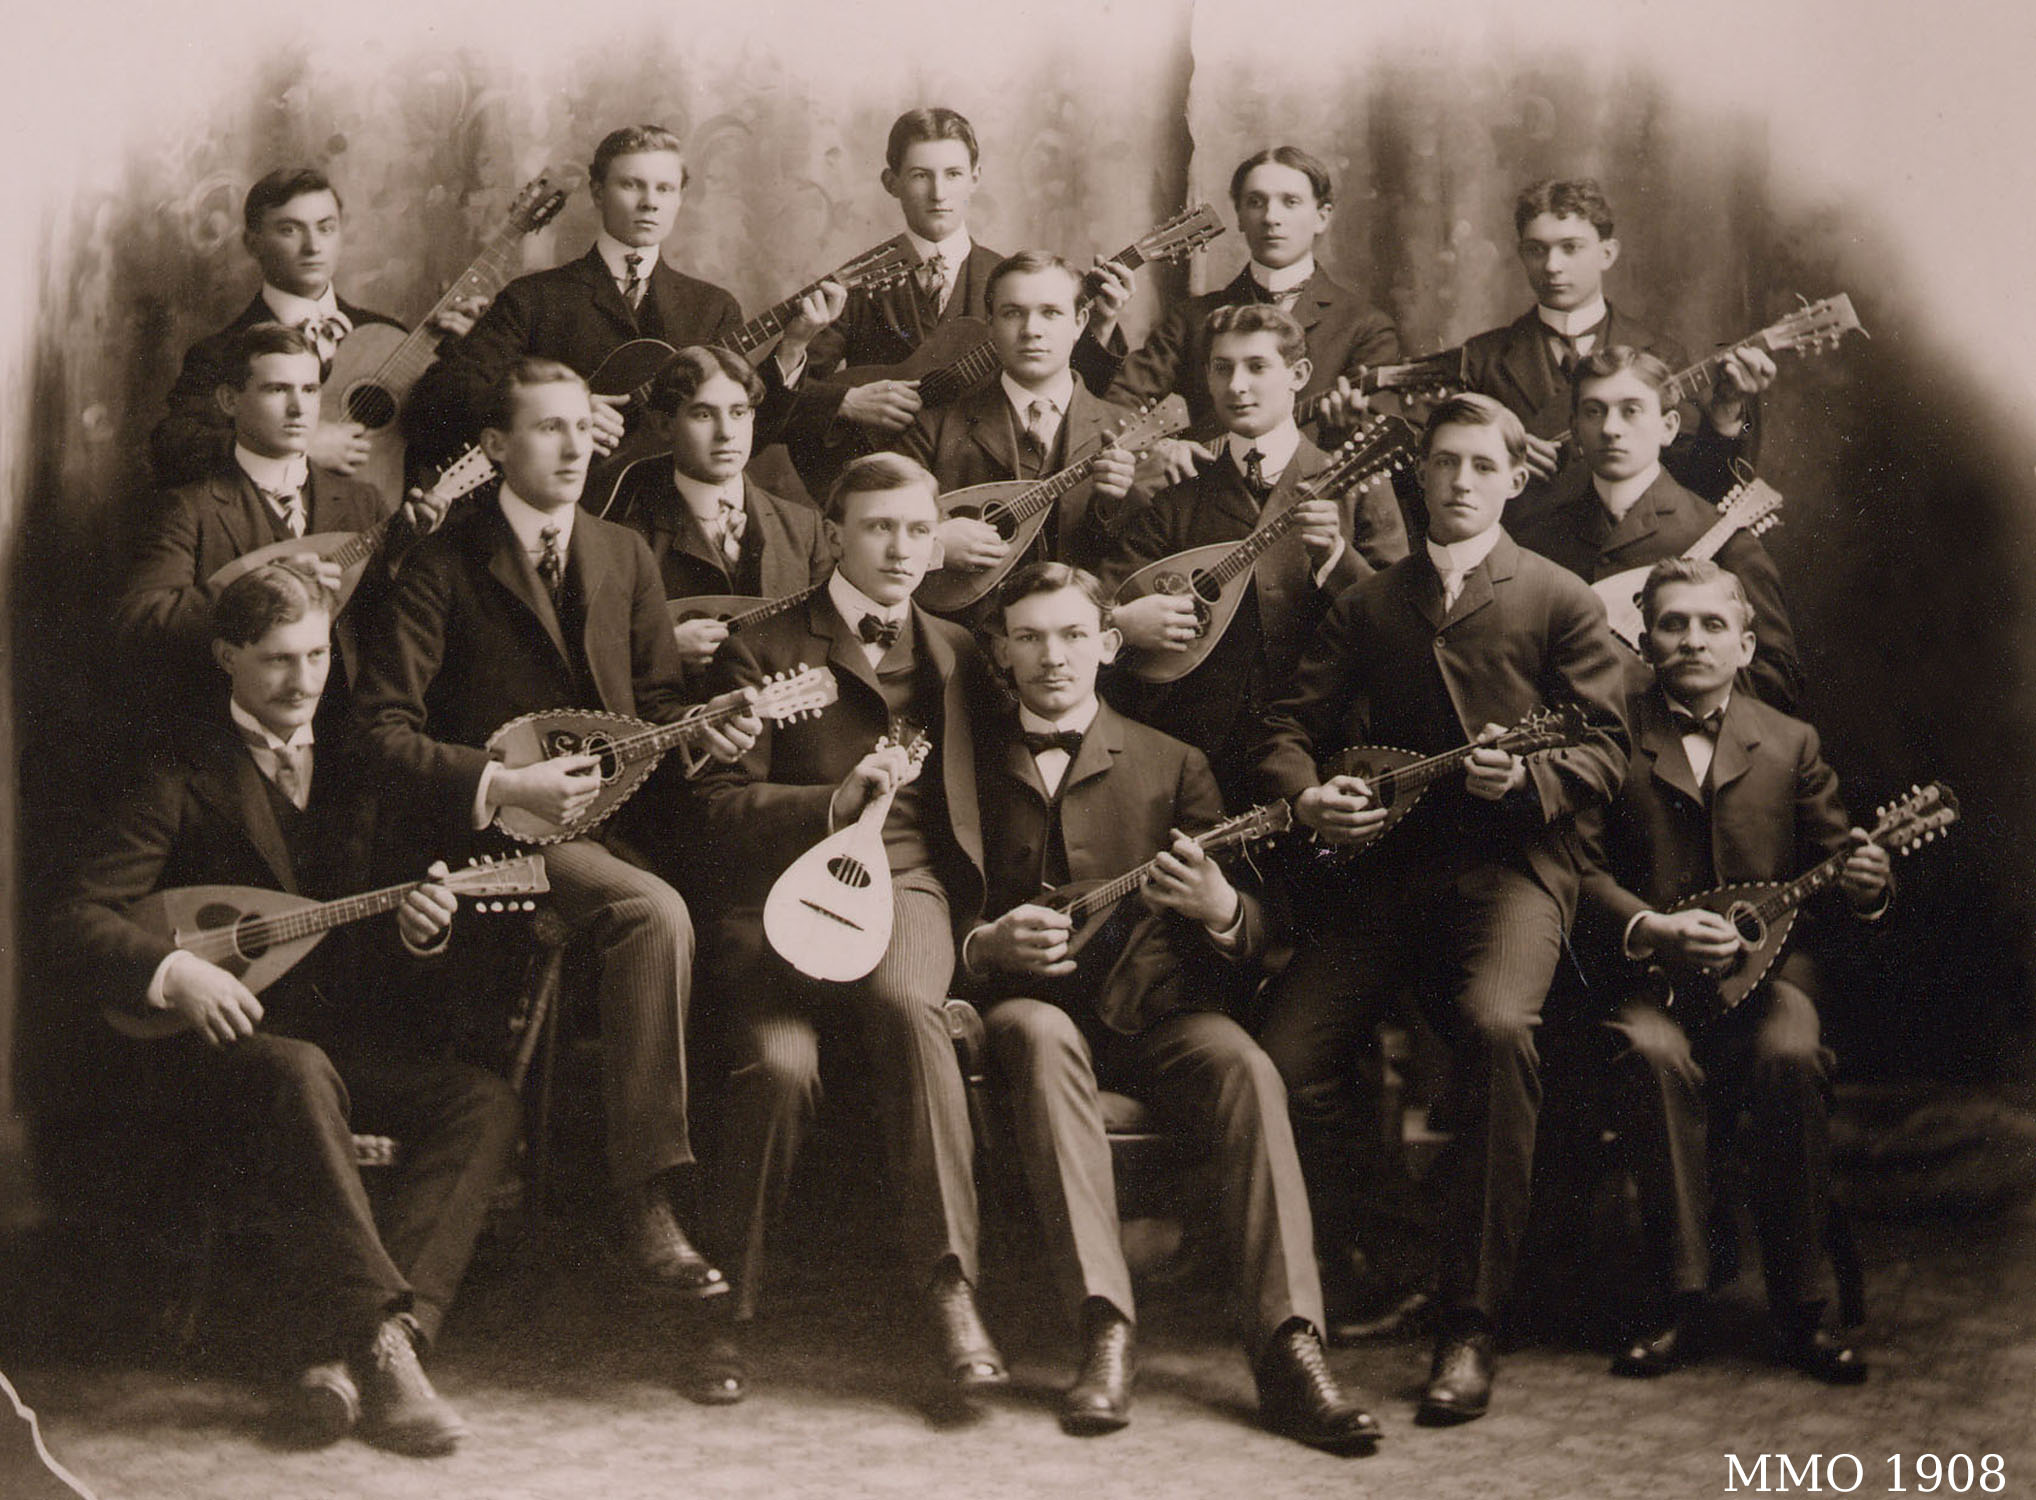 The Milwaukee Mandolin Orchestra (MMO)in 1908. This picture shows some of the original membersof the oldest fretted-instrument music organization in the United States.